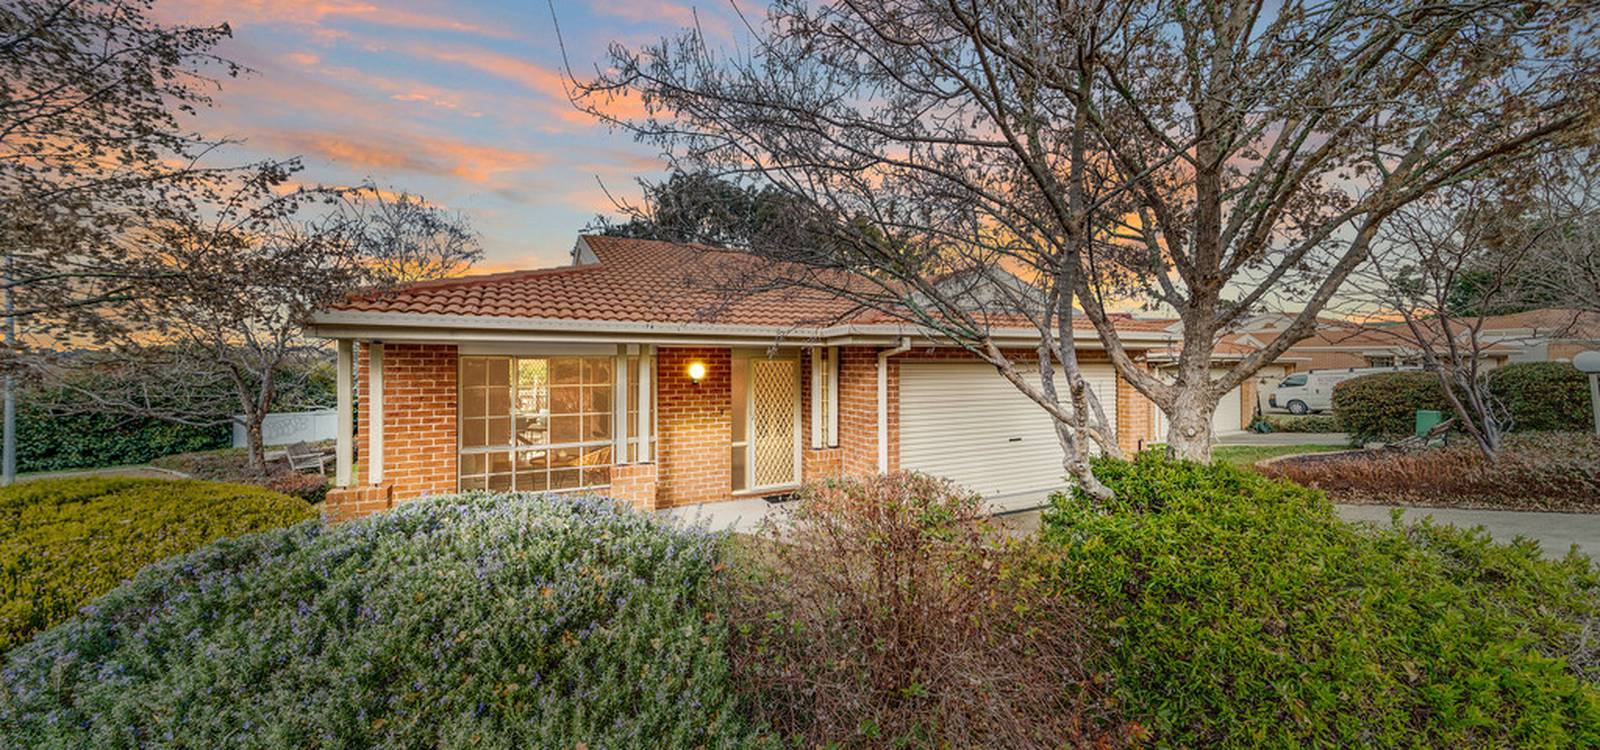 1/16 Monaghan Place NICHOLLS, ACT 2913 - photo 1